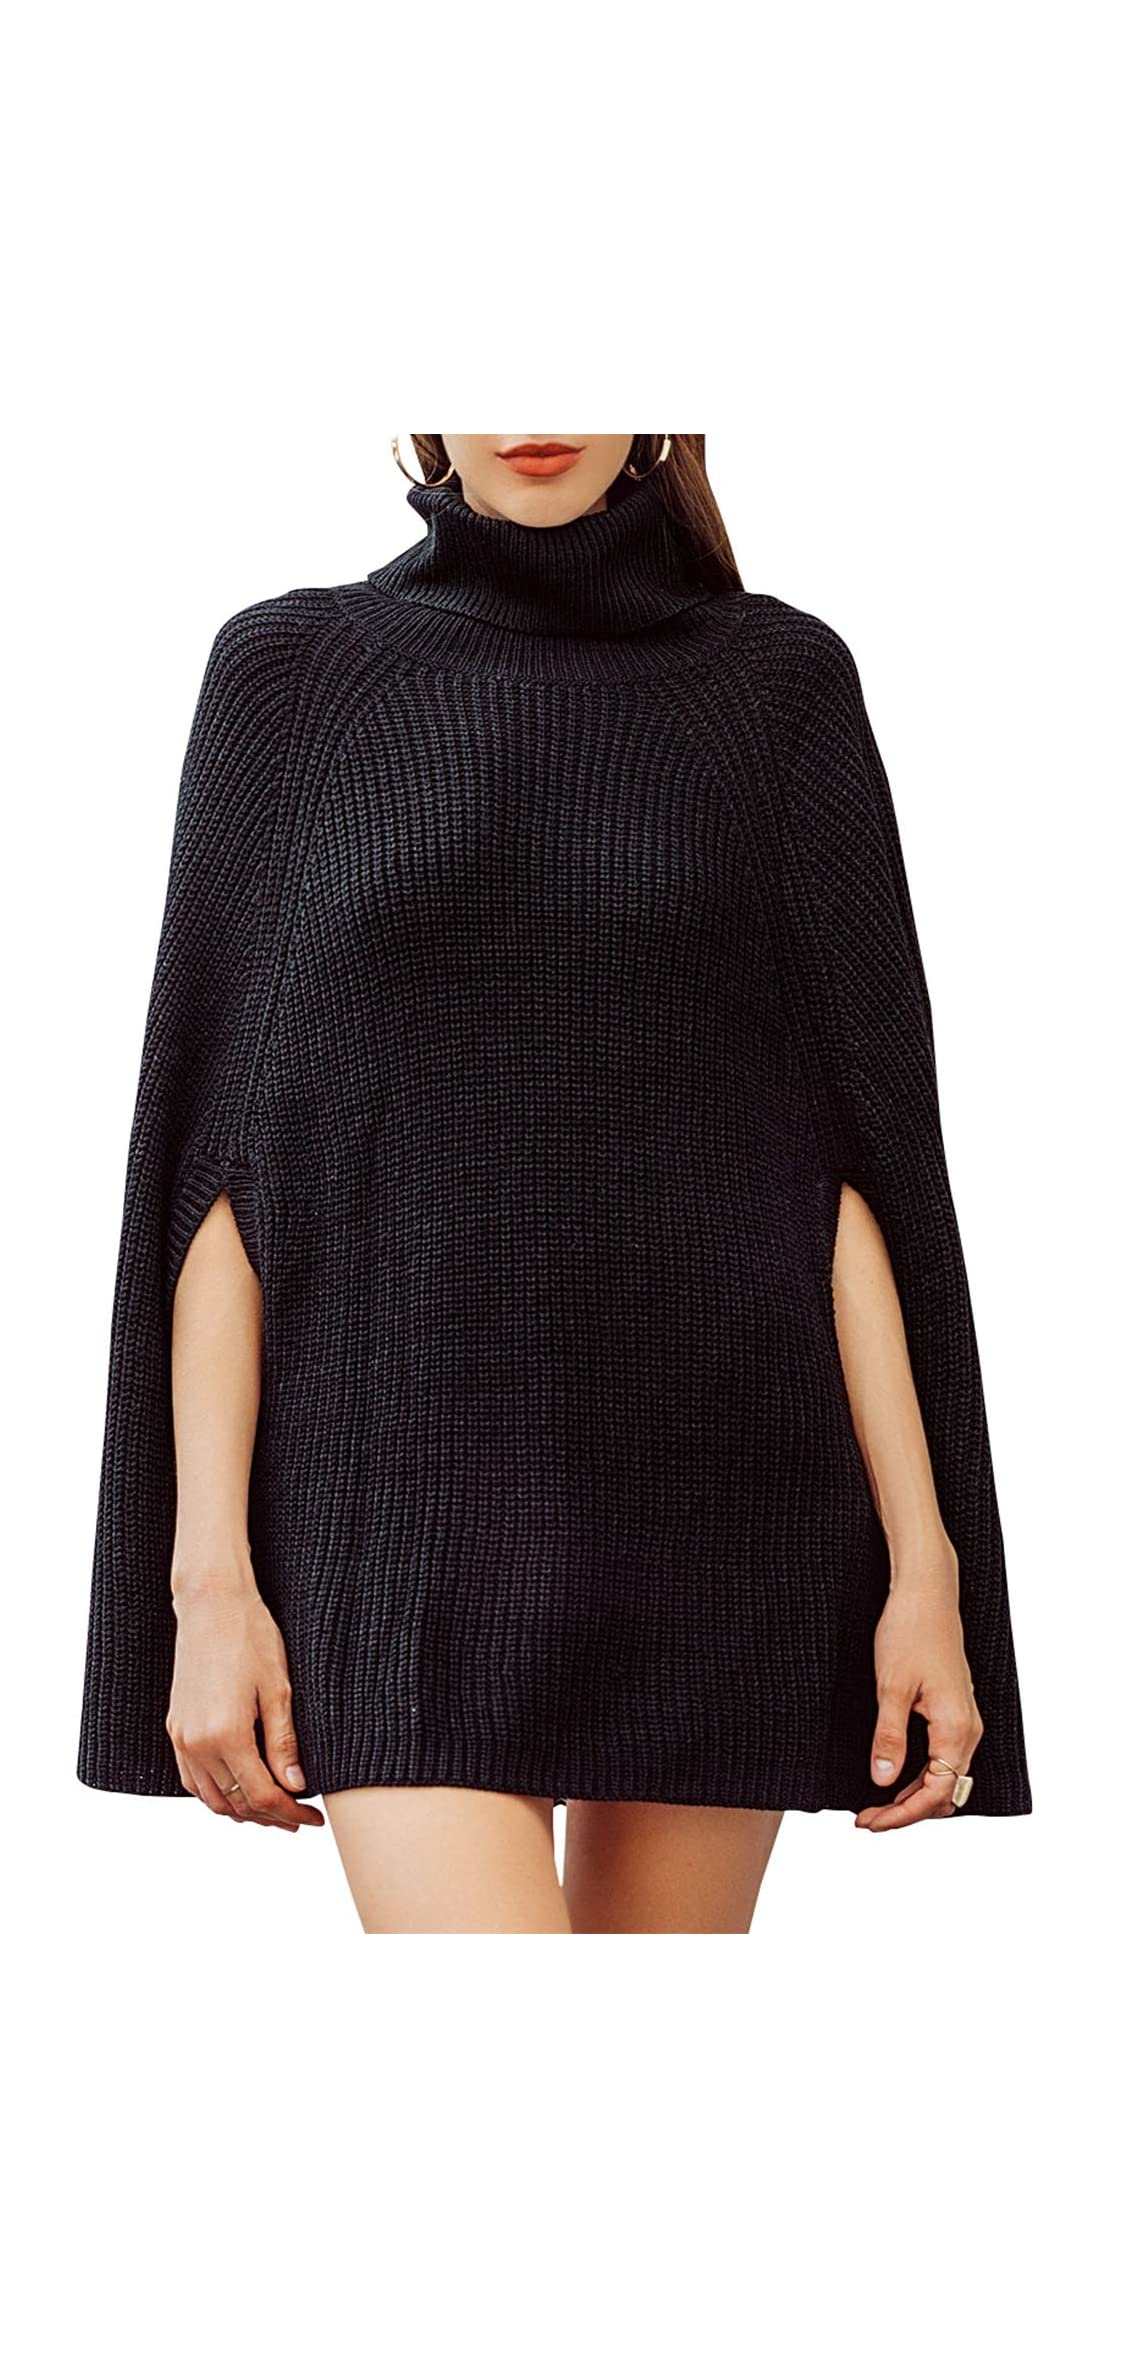 Women's Casual Turtleneck Cape Sweater Knitted Pullover